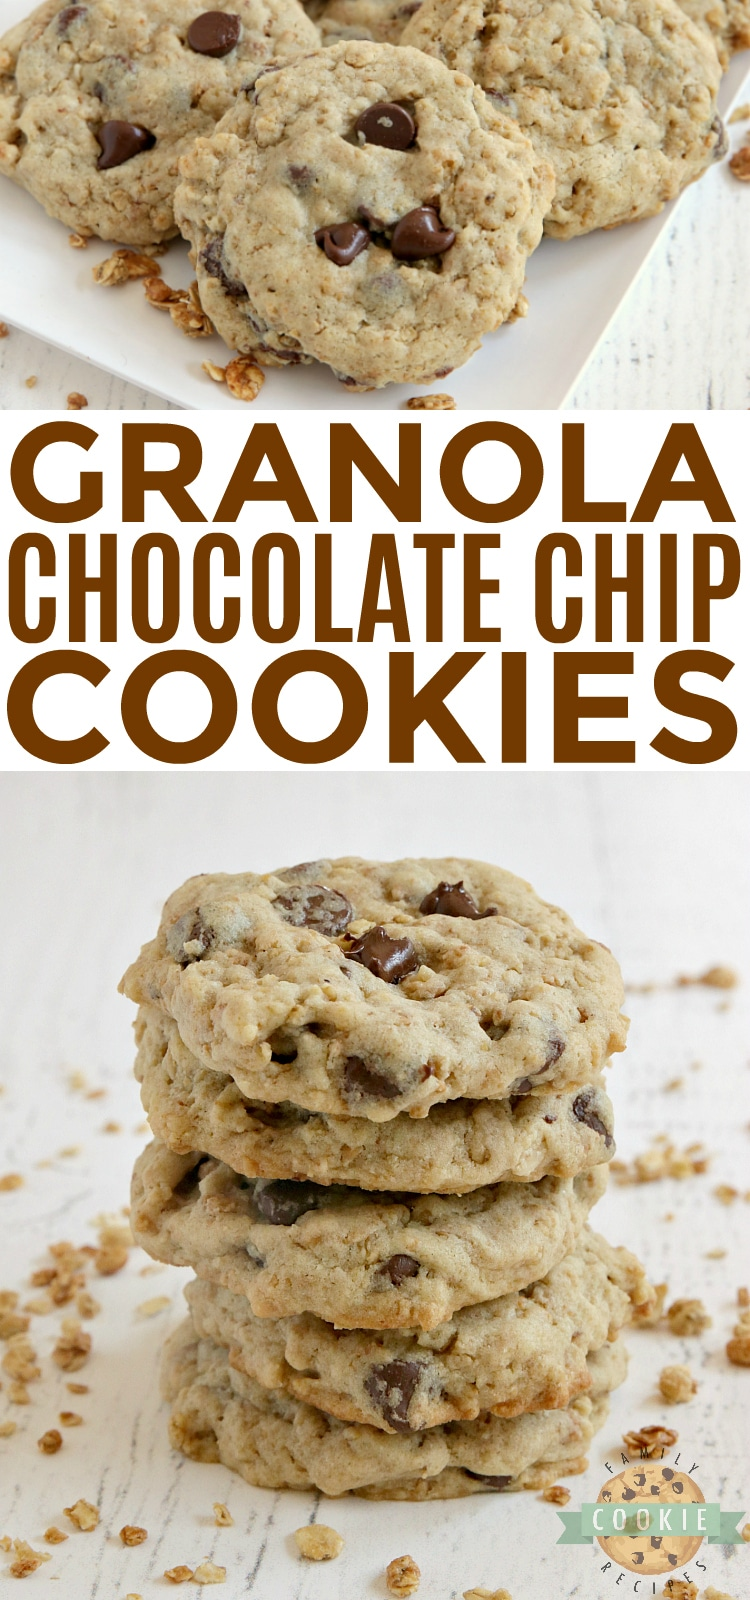 Granola Chocolate Chip Cookies are soft, chewy, full of protein and crunchy granola. With 5 grams of protein per cookie and a little bit of crunch, these have become my new favorite cookie! via @familycookierecipes